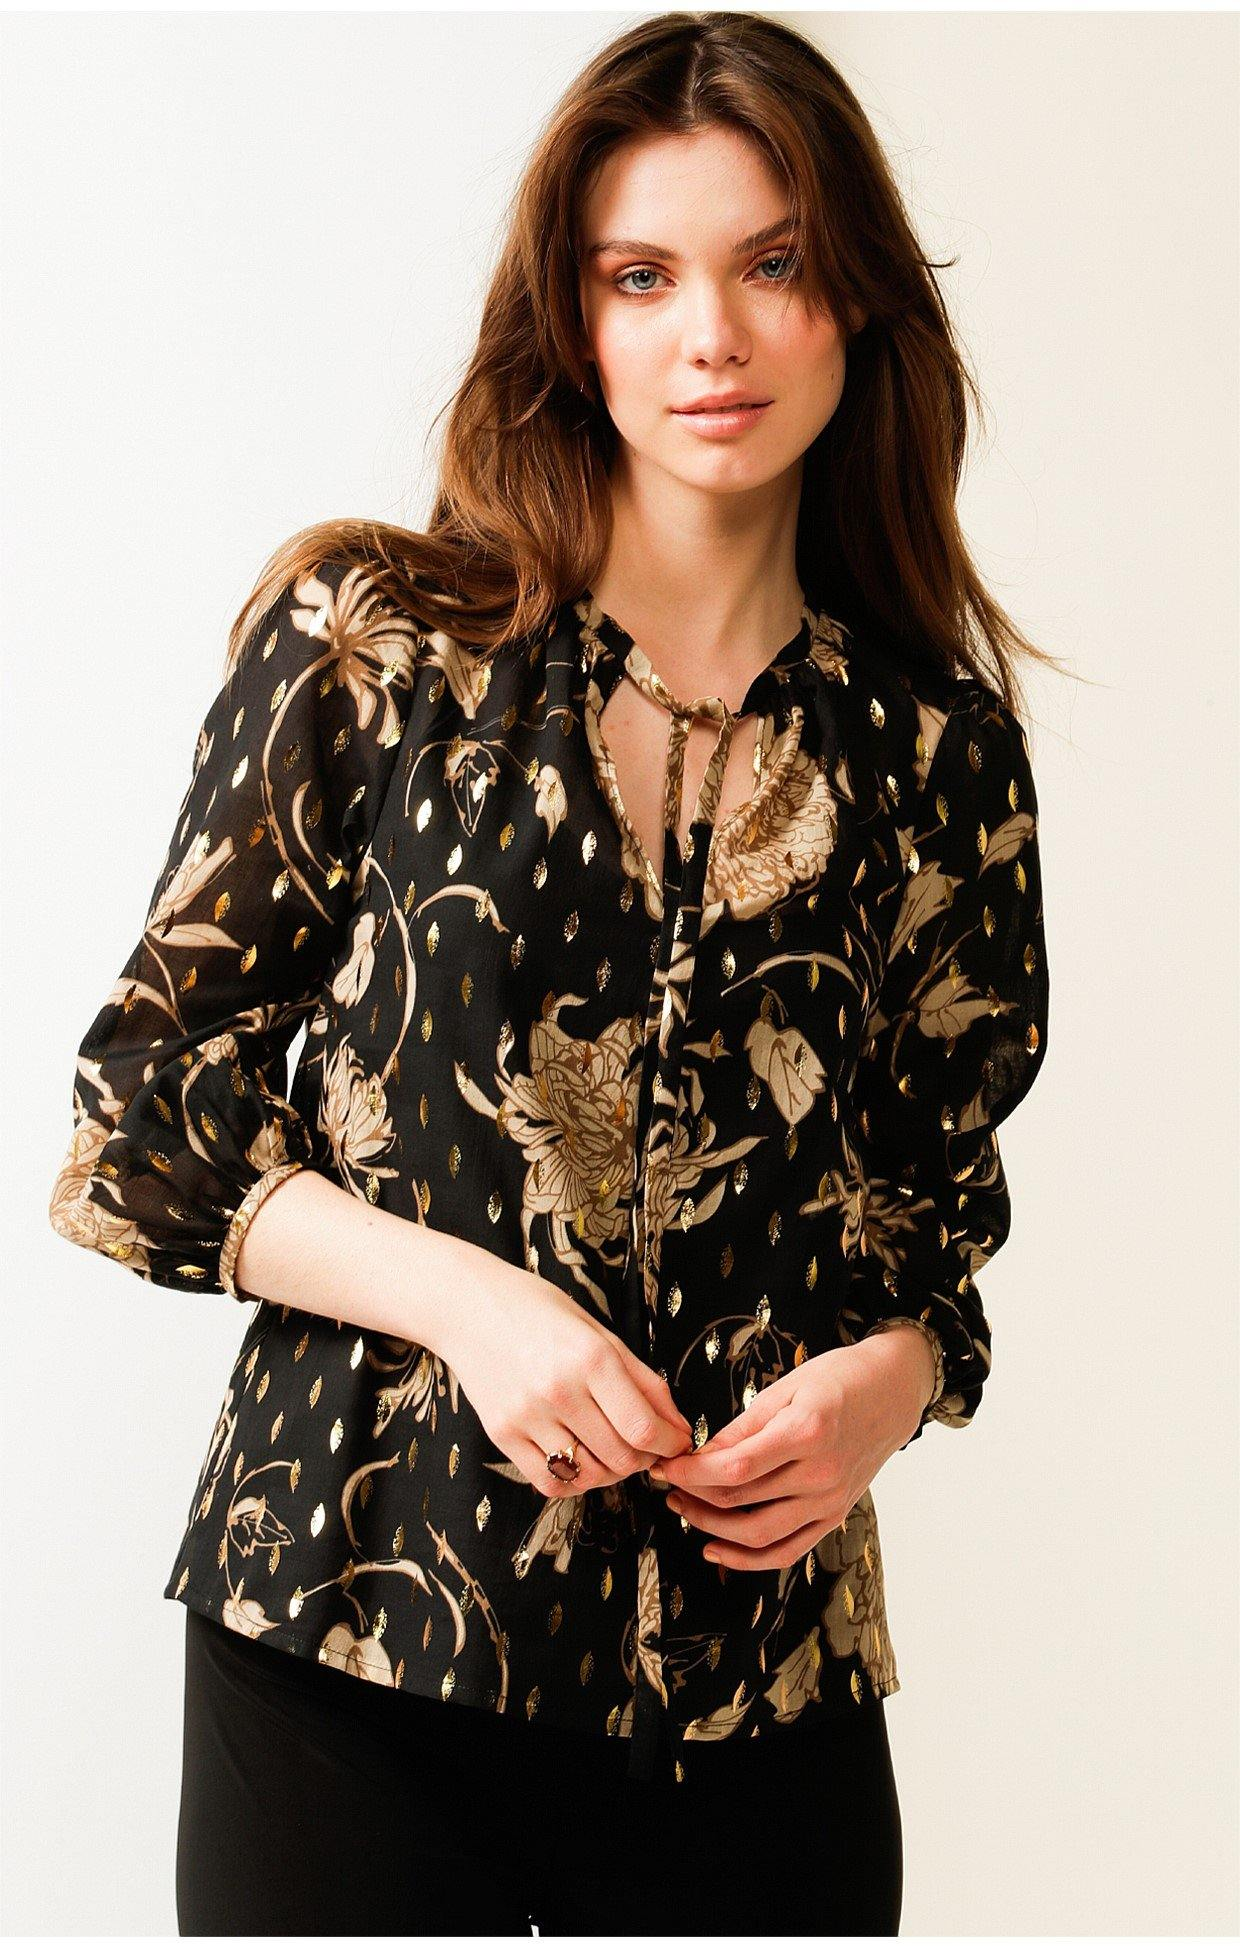 Breakfast Creek Blouse by Sacha Drake - Weekends on 2nd Ave